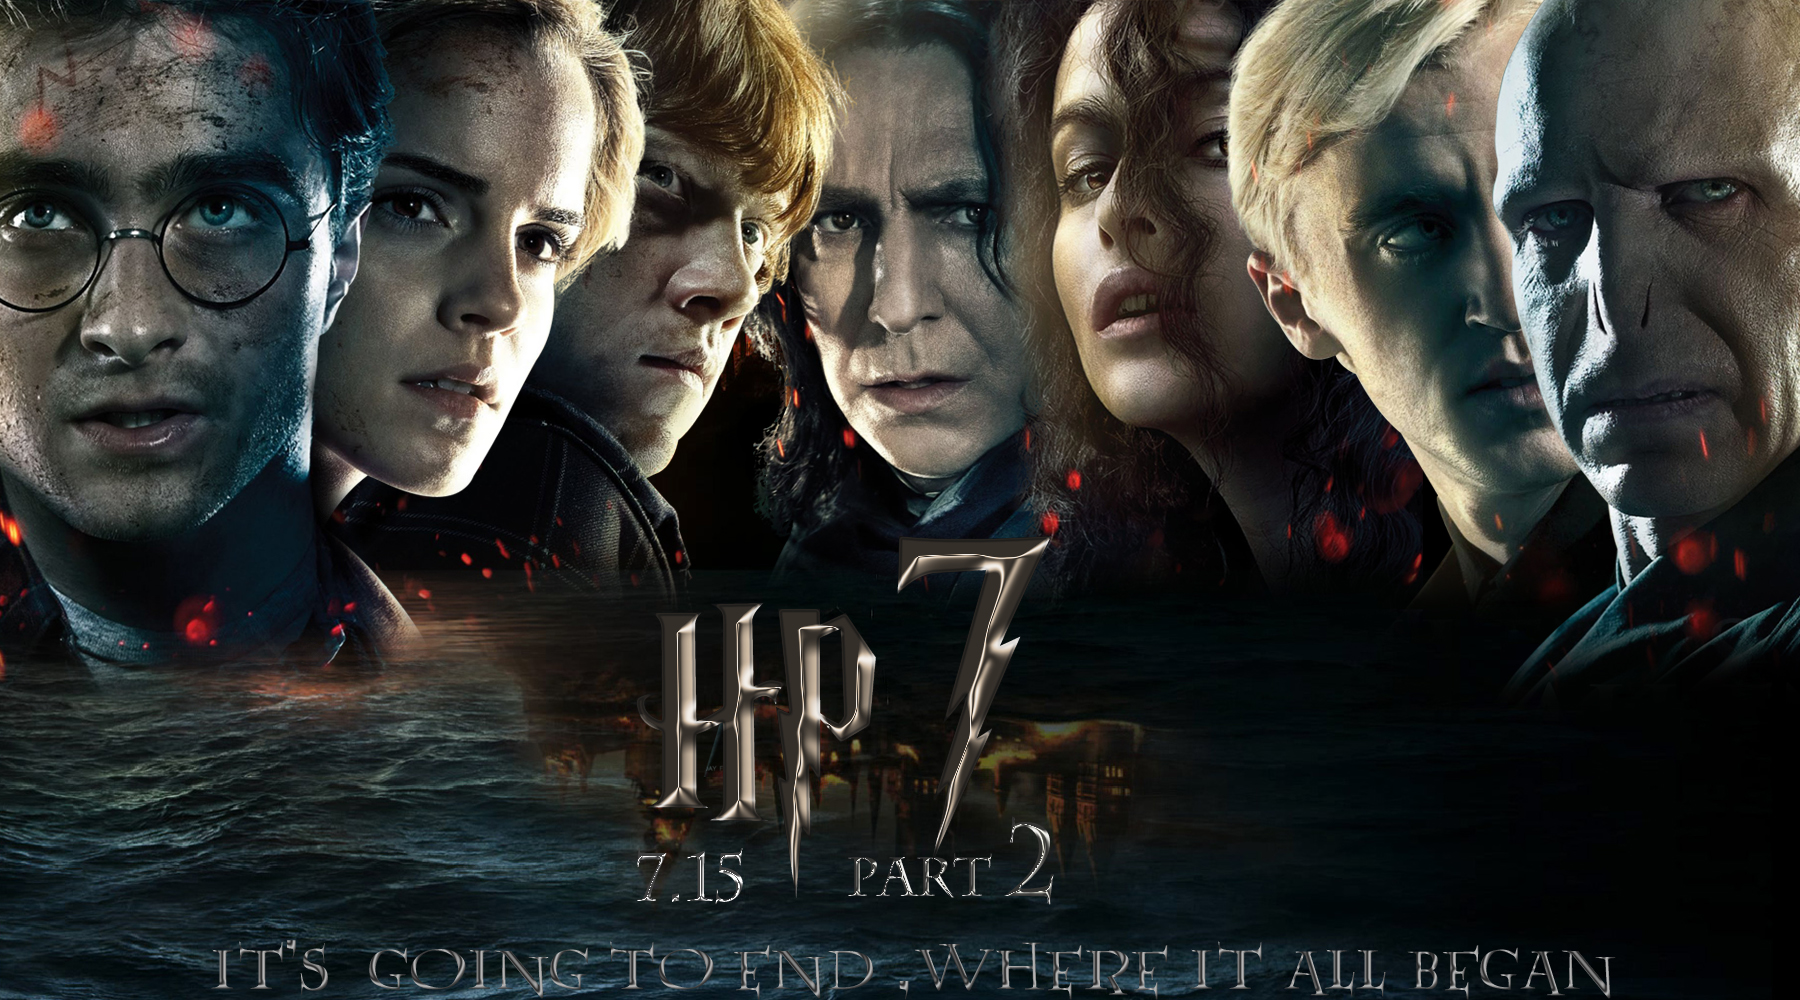 deathly hallows part II by thedemonknight on DeviantArt